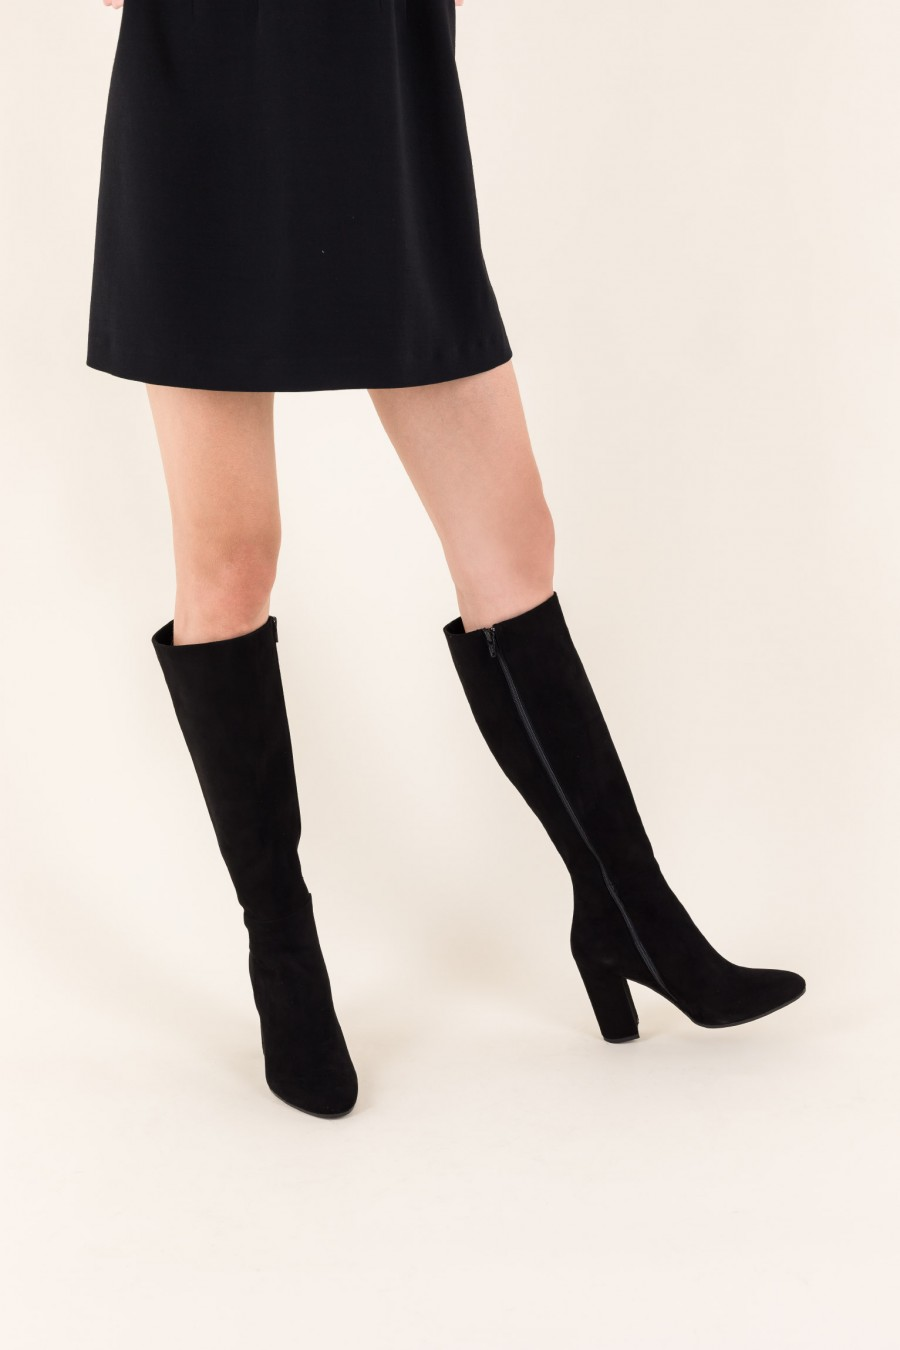 Boots with rounded high heels